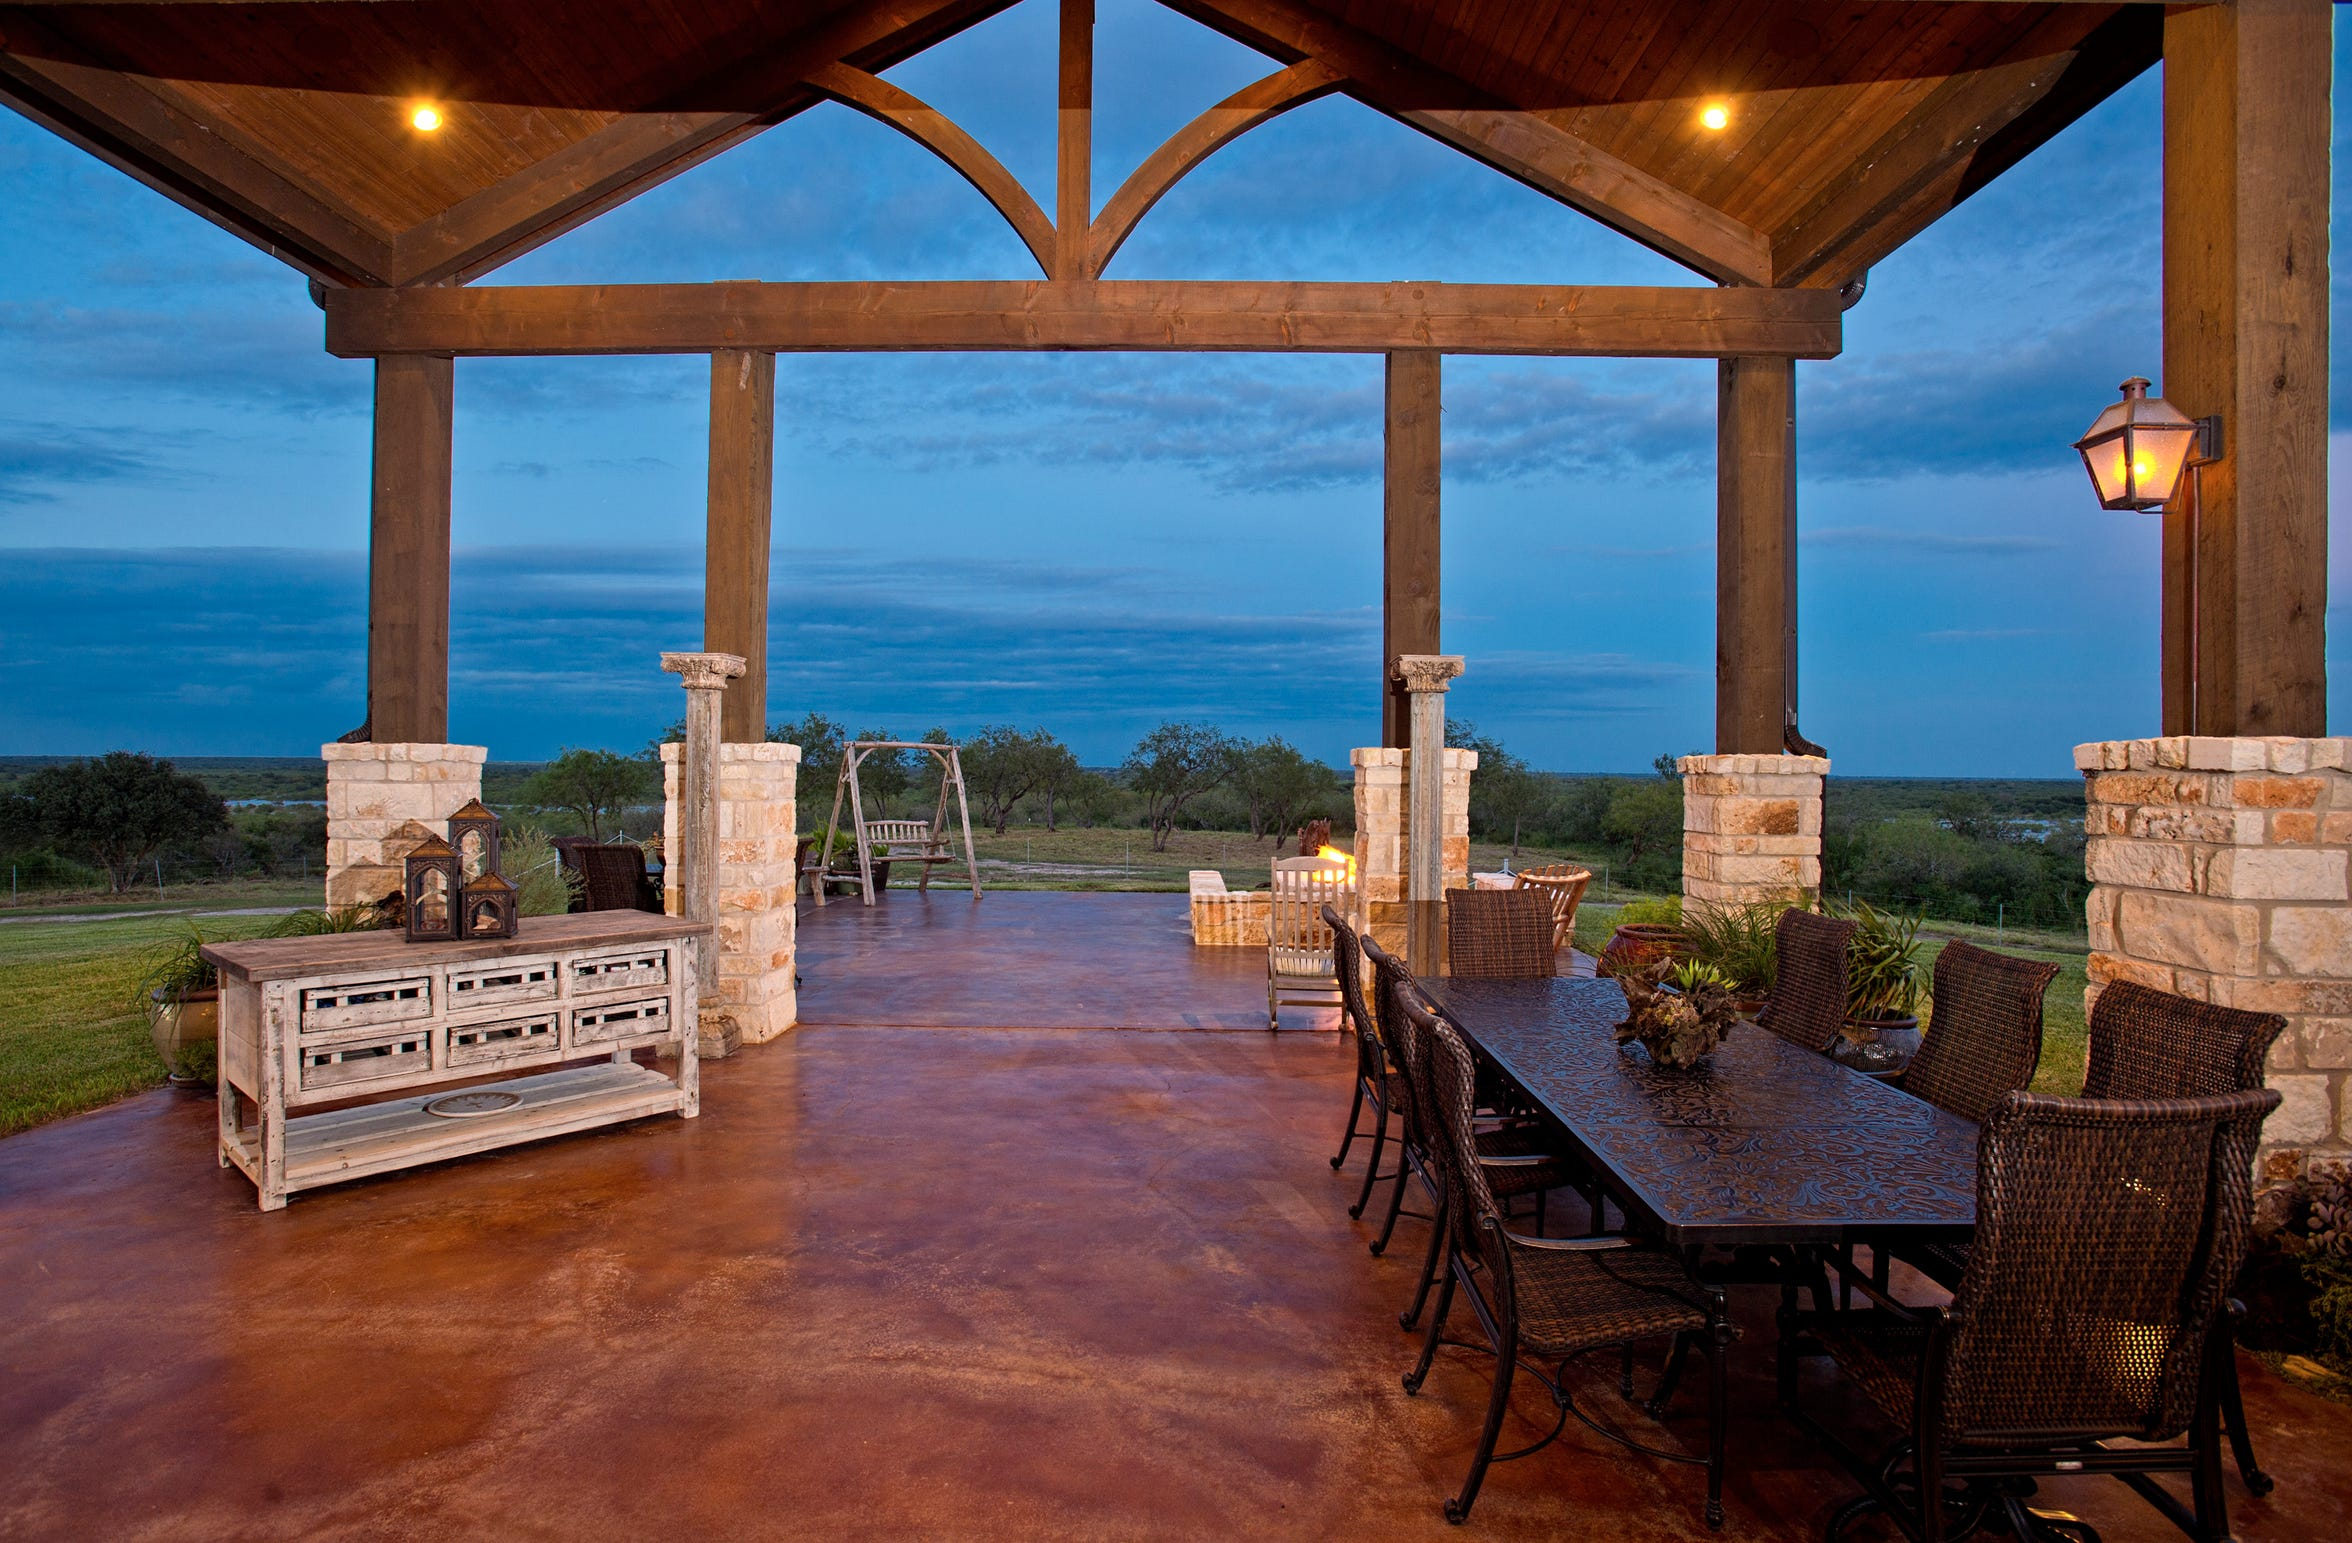 The roofline supported by heavy solid wood truss beams continues from the living space to the amazing outdoor living space overlooking the Nueces River and expansive acreage surrounding the home.